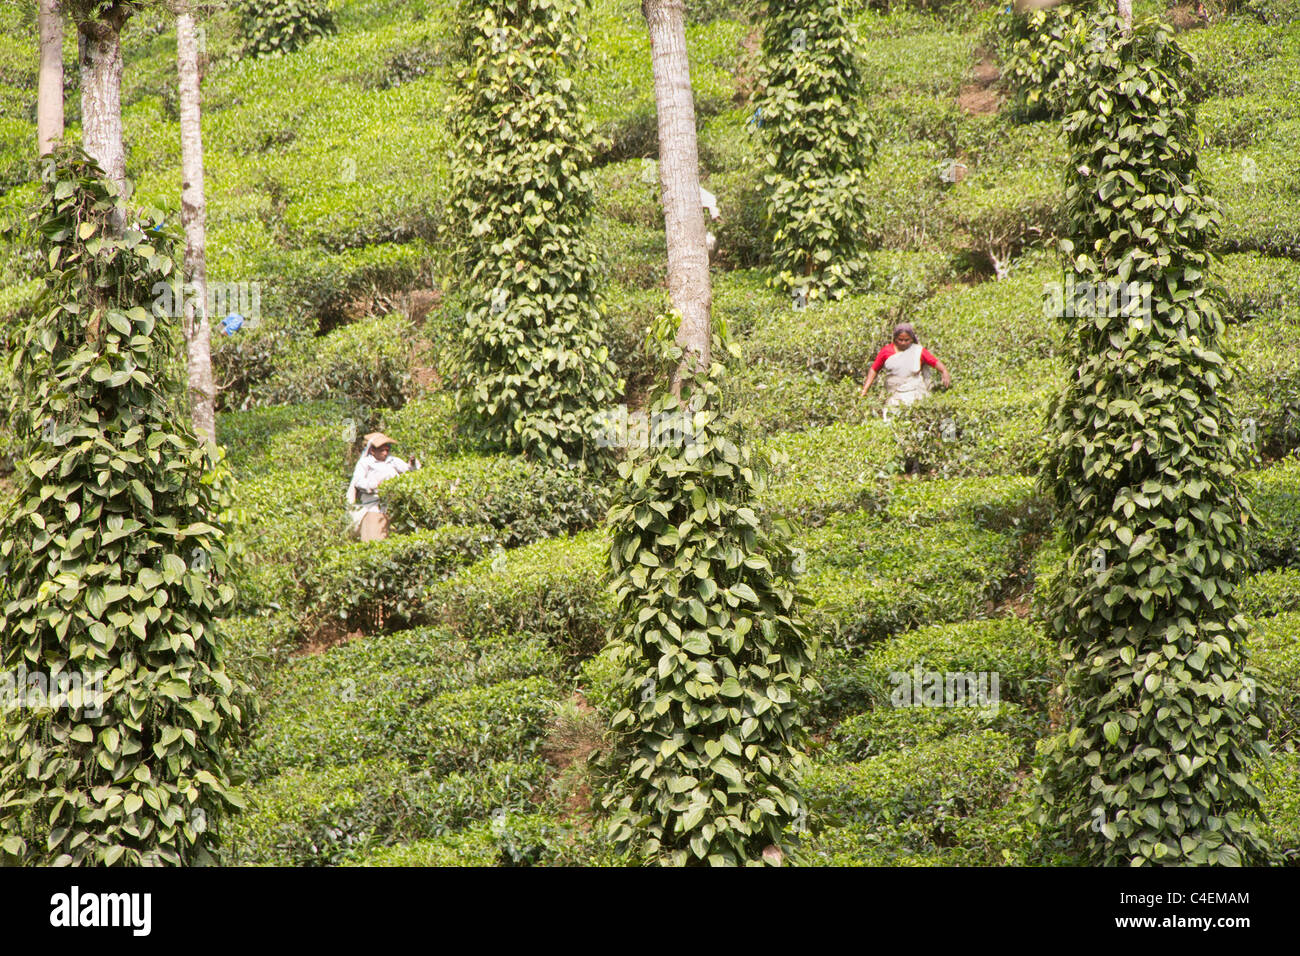 Workers pick tea leaves from Tea Bushs shaded by Silver Oak Trees on which Pepper vines grow - Stock Image